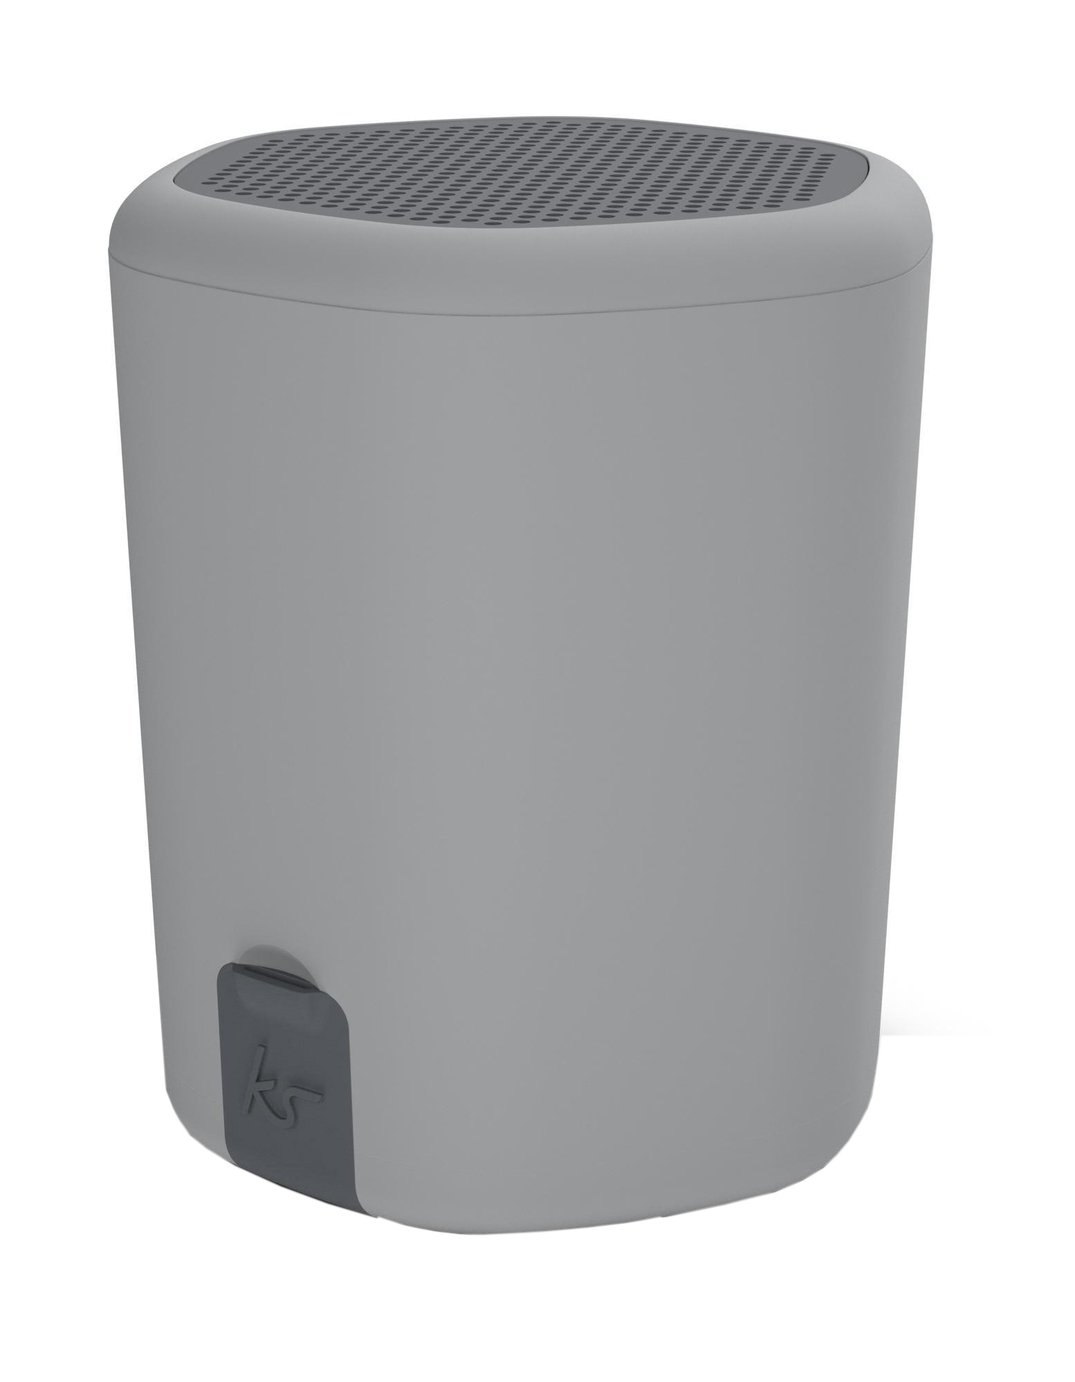 Kitsound Pocket Hive 20 Bluetooth Speaker - Grey